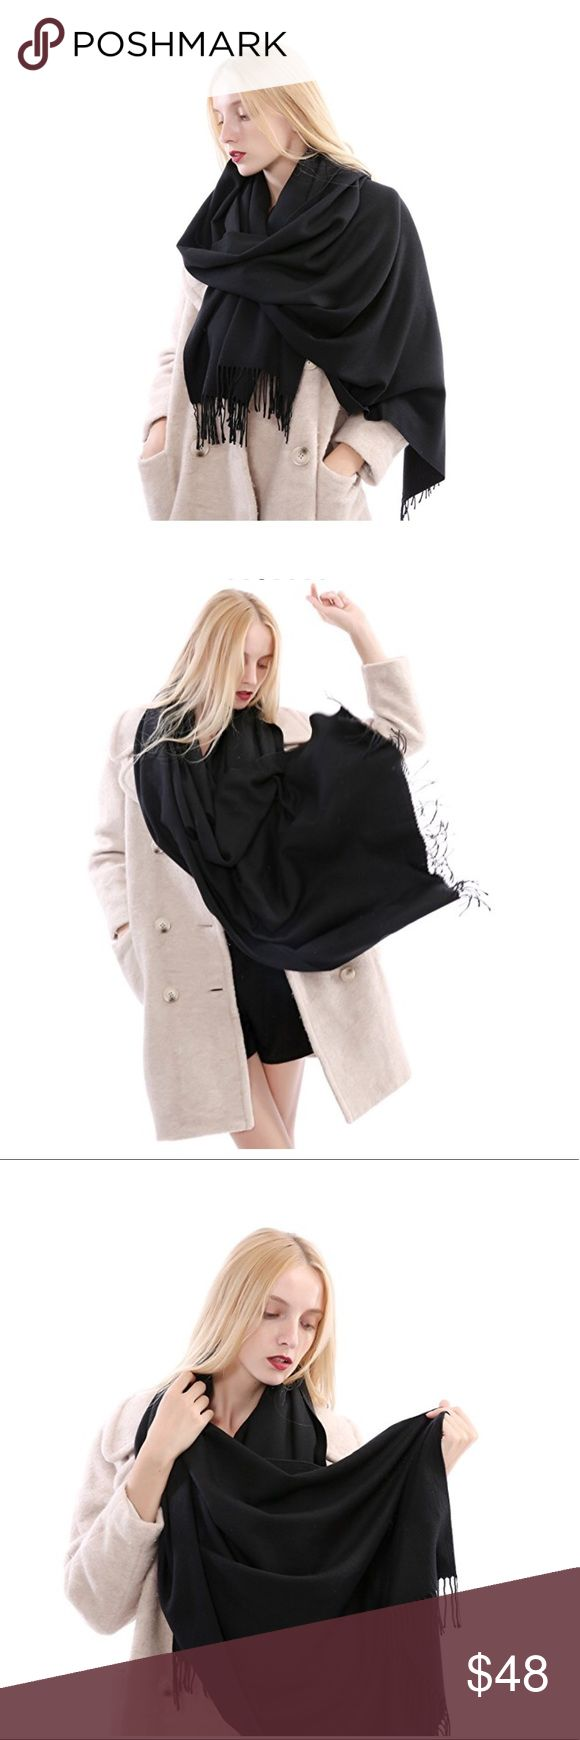 Black Cashmere Blanket Scarf This gorgeous, luxuriously soft blanket scarf is a the perfect layering piece for winter and works equally well to keep you toasty at the office, too.  Fabric composition is 35% cashmere, 65% cotton.  Bring yours home today! Lalea Accessories Scarves & Wraps